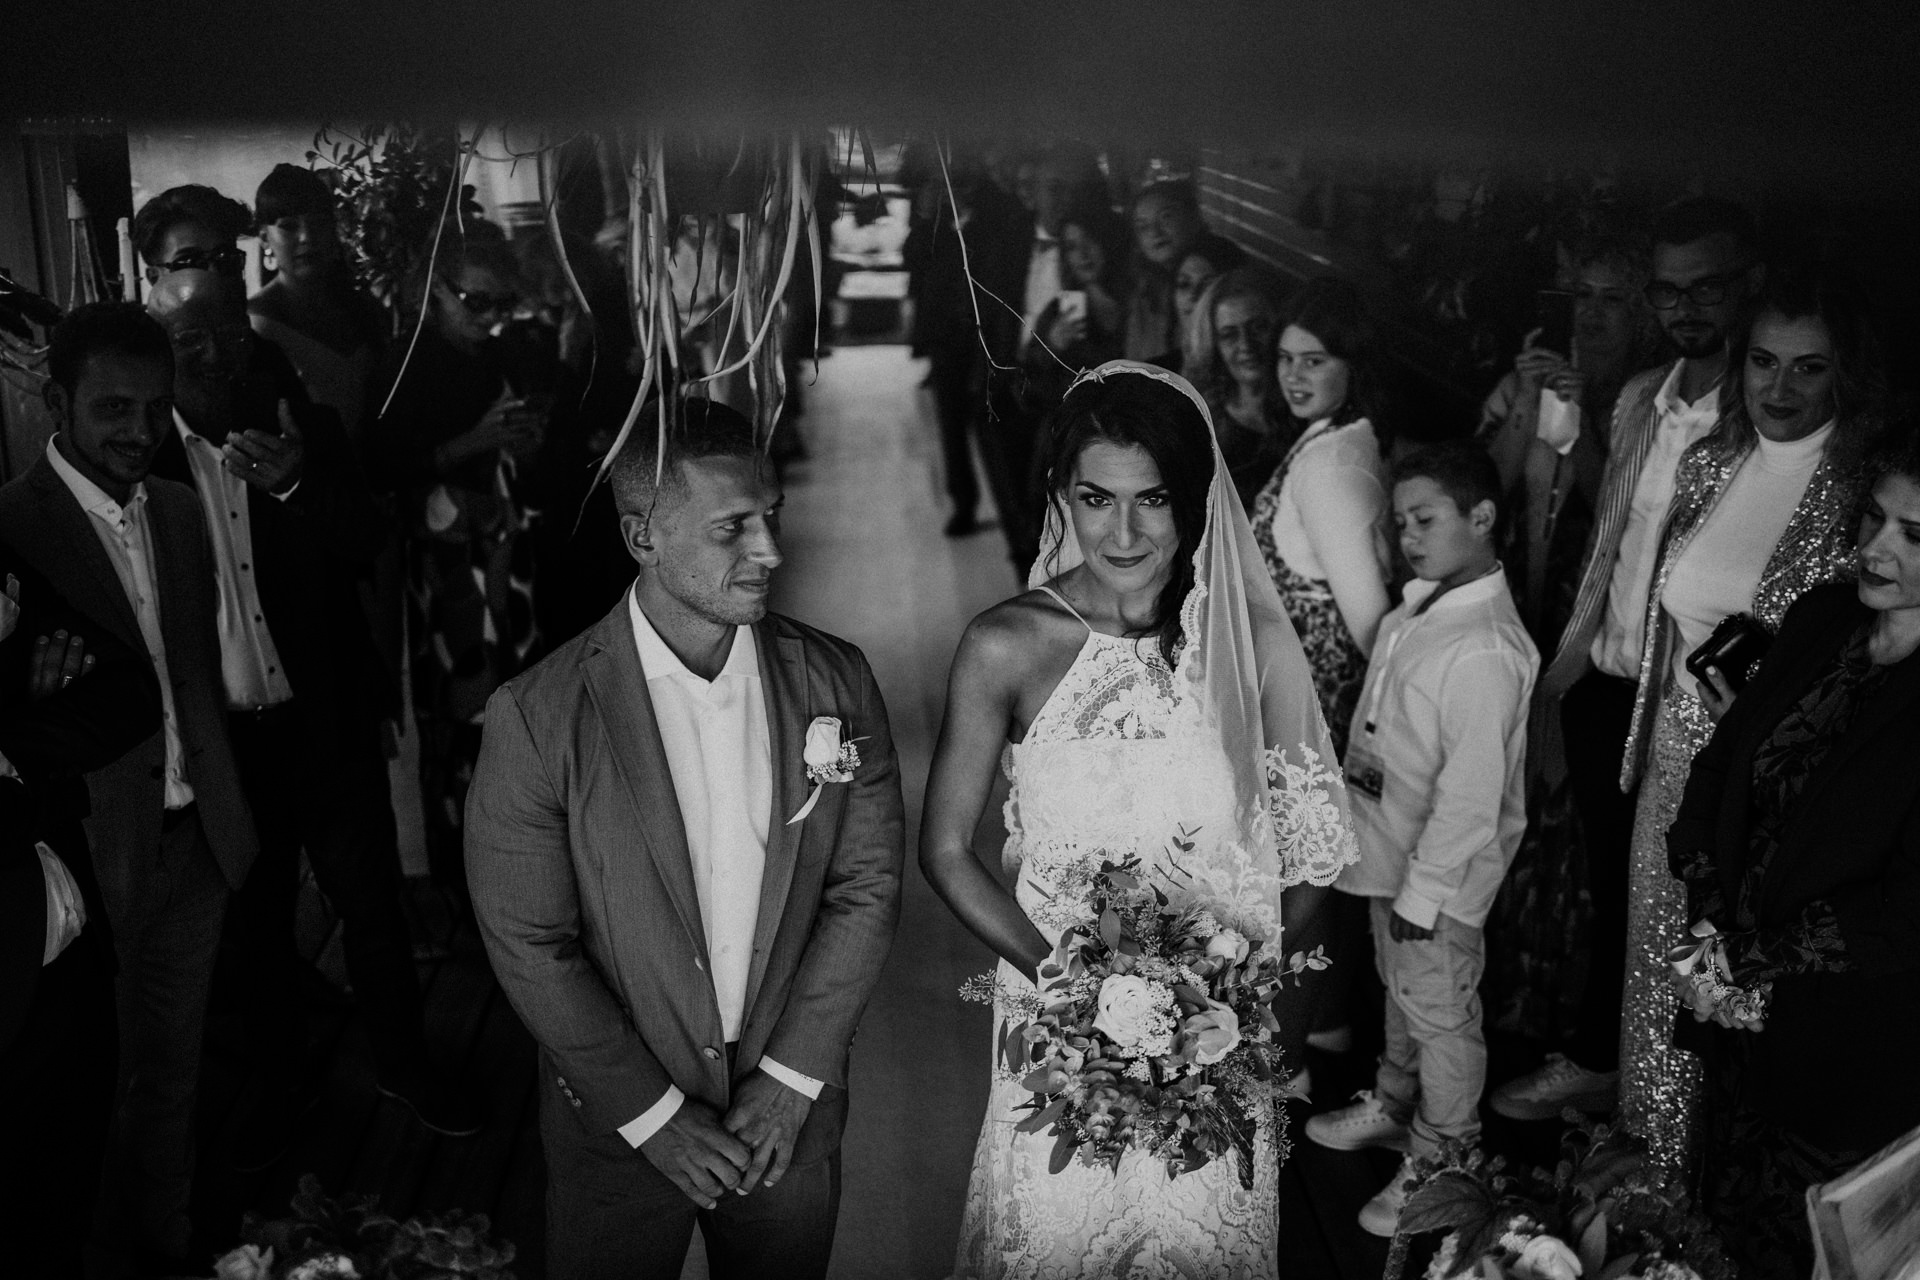 Fiumara Beach Wedding Photography - Grosseto, Italy | The bride and groom look both determined and excited